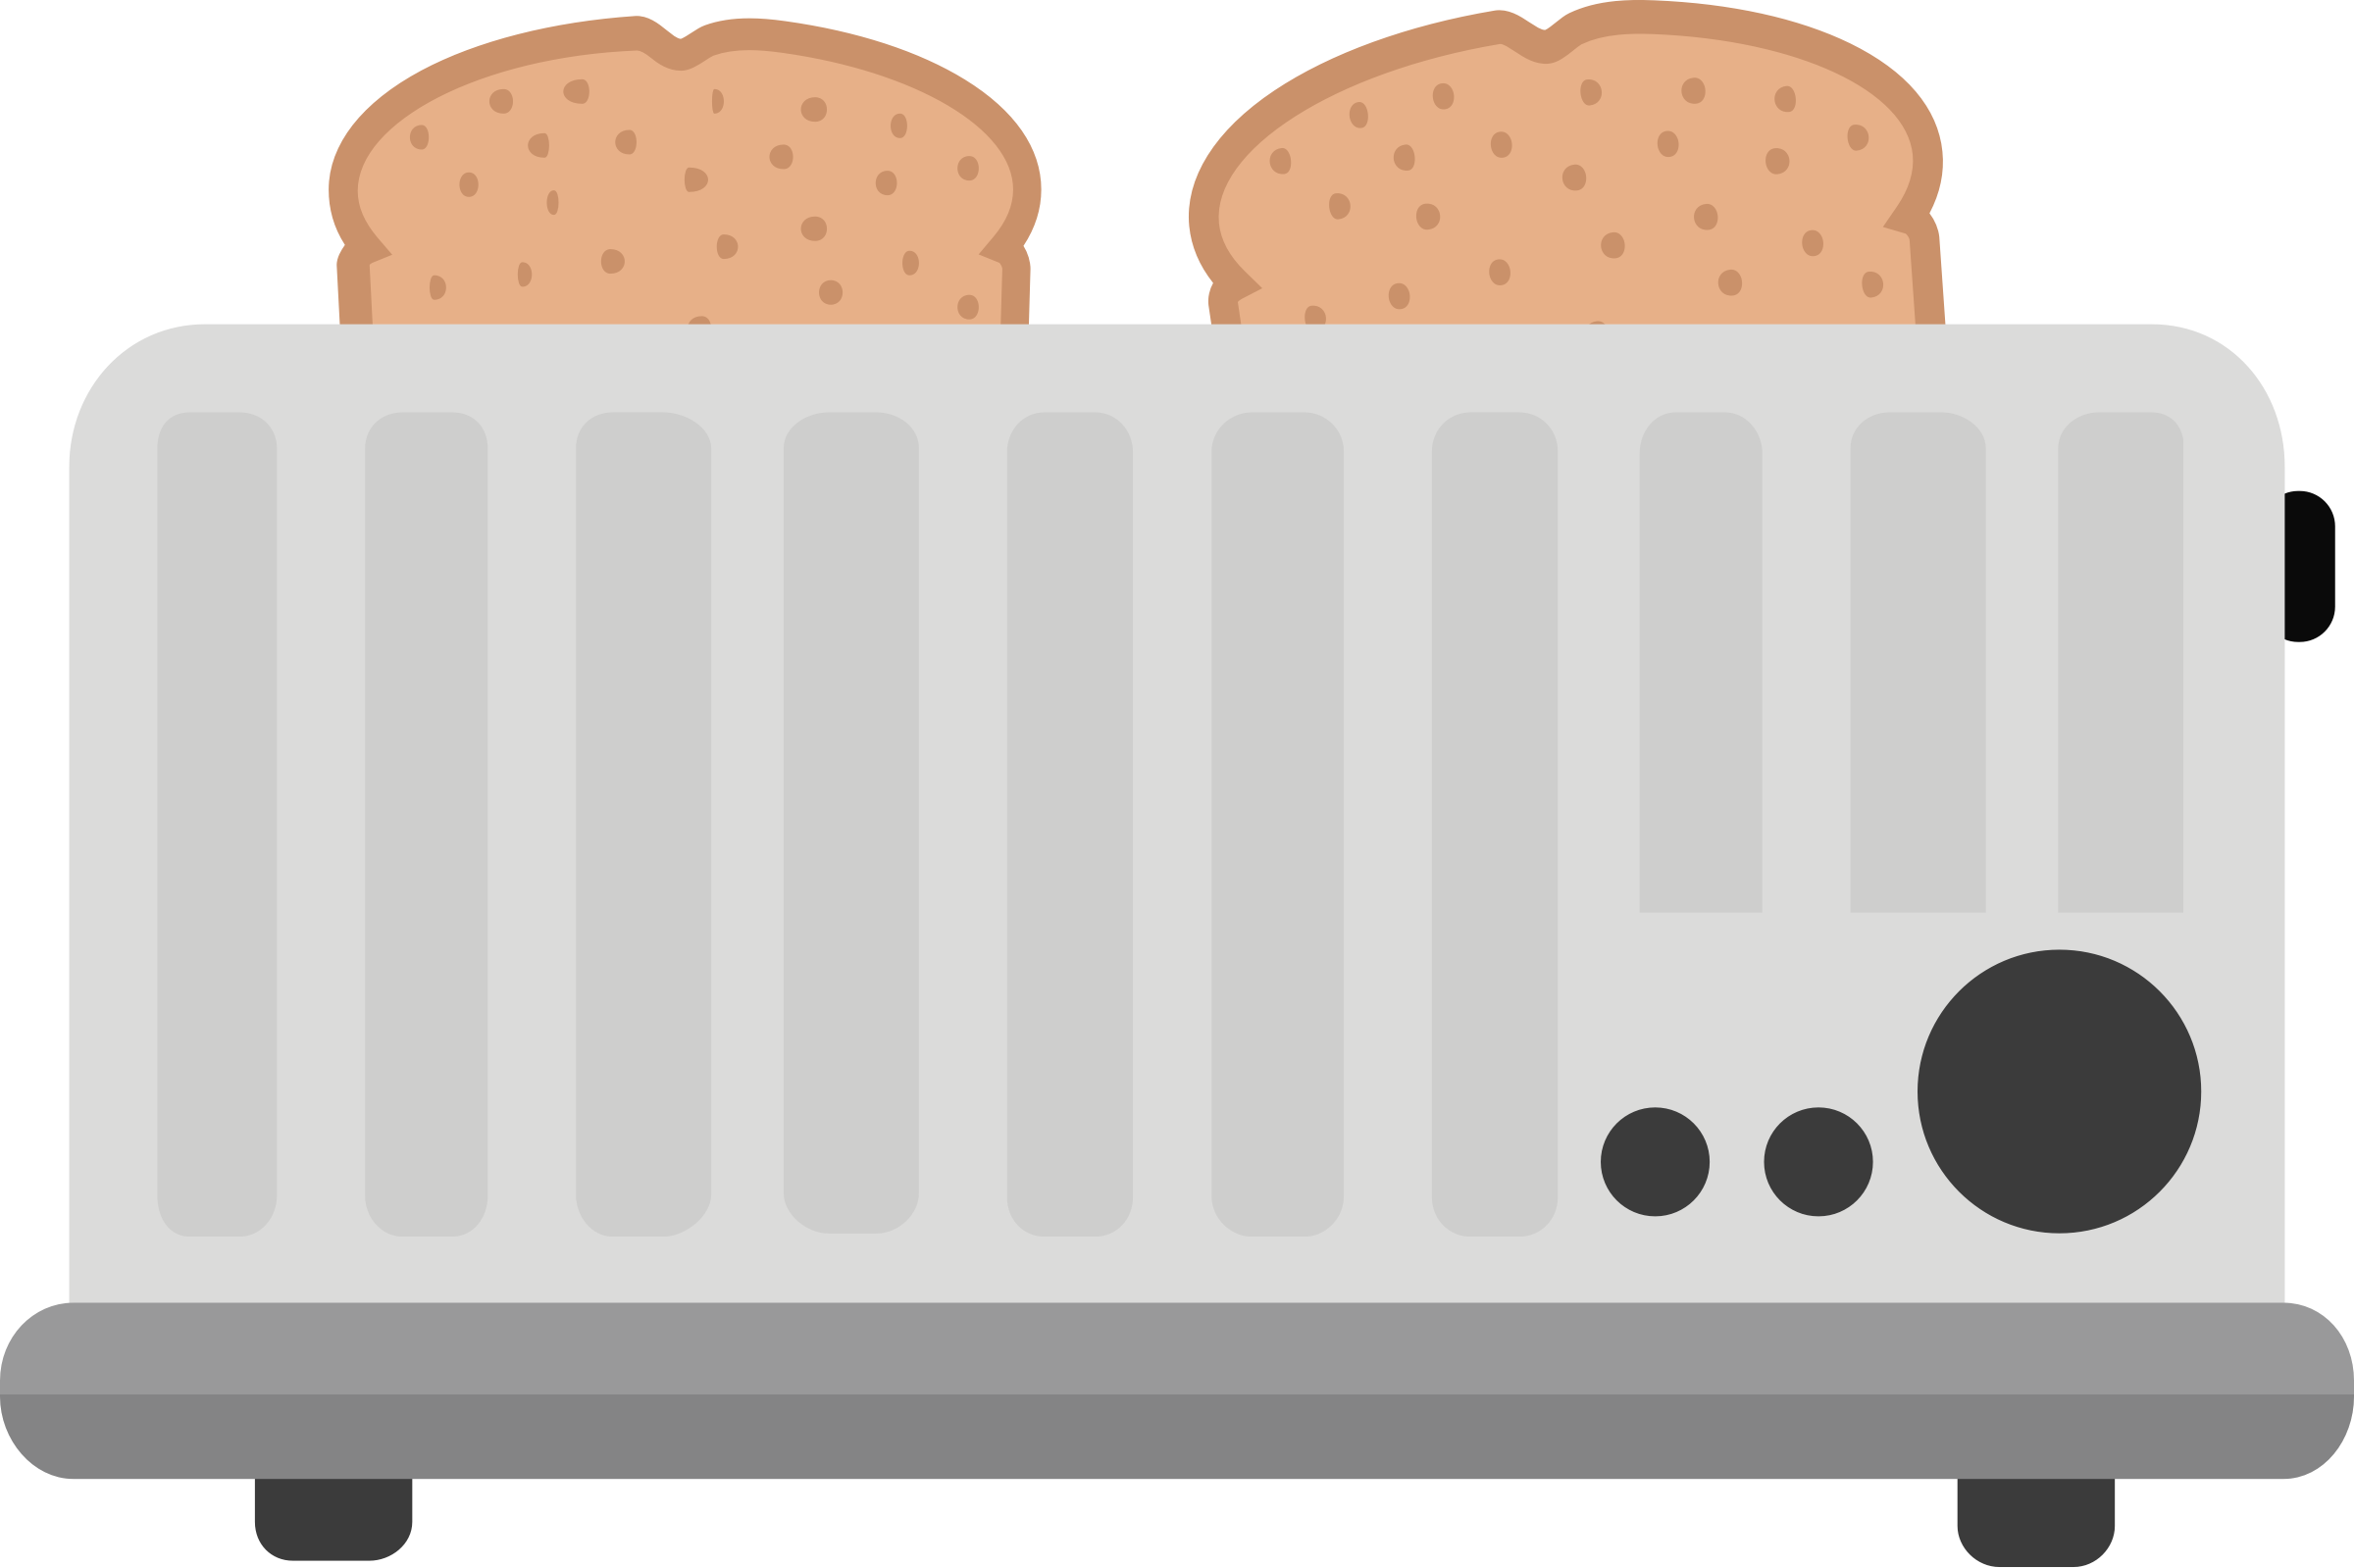 picture freeuse download With toast big image. Toaster clipart